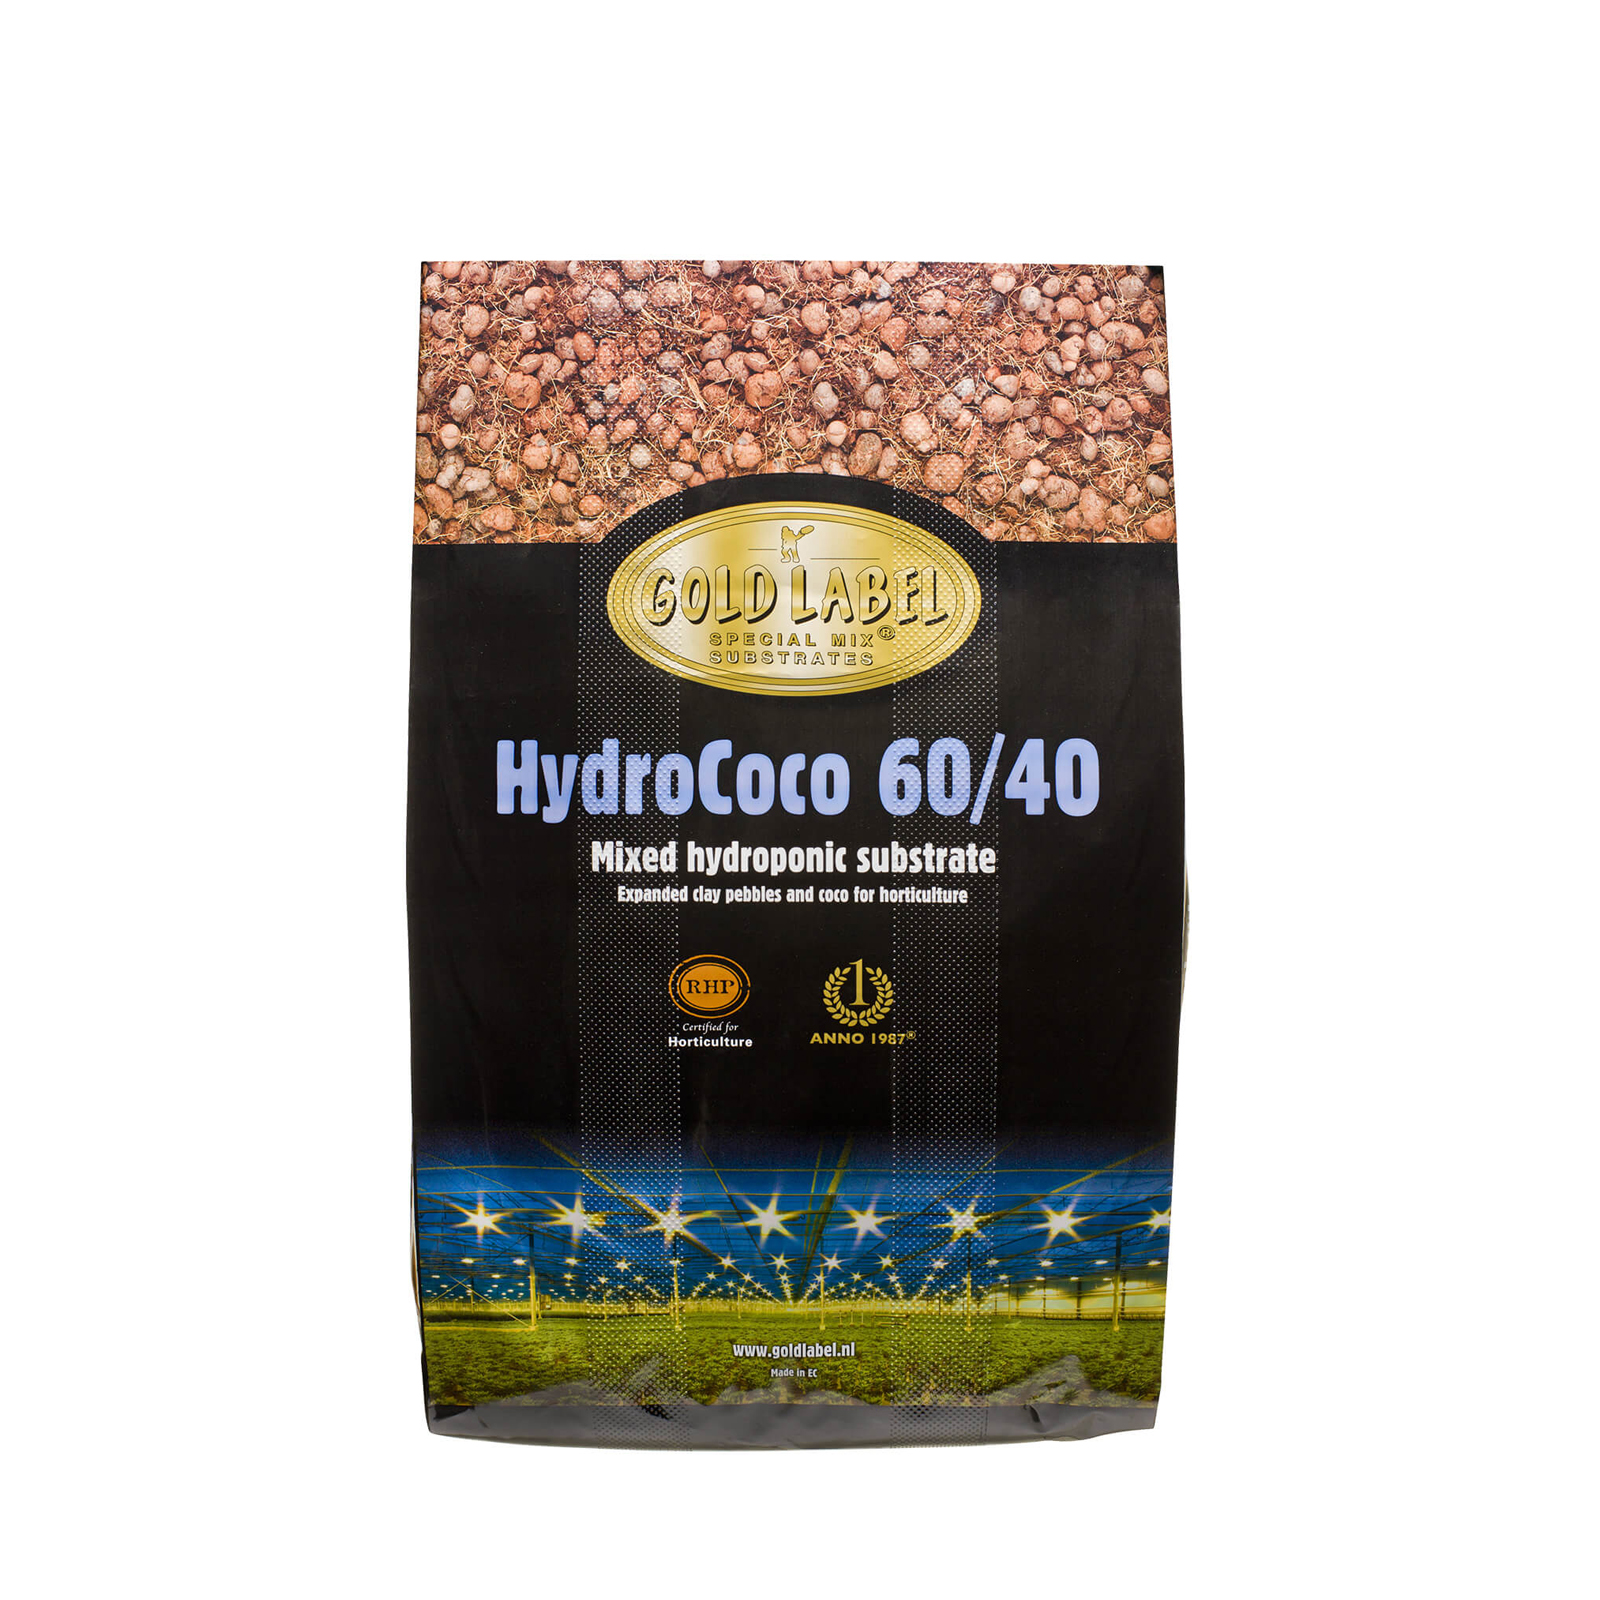 Gold Label 60/40 HydroCoco